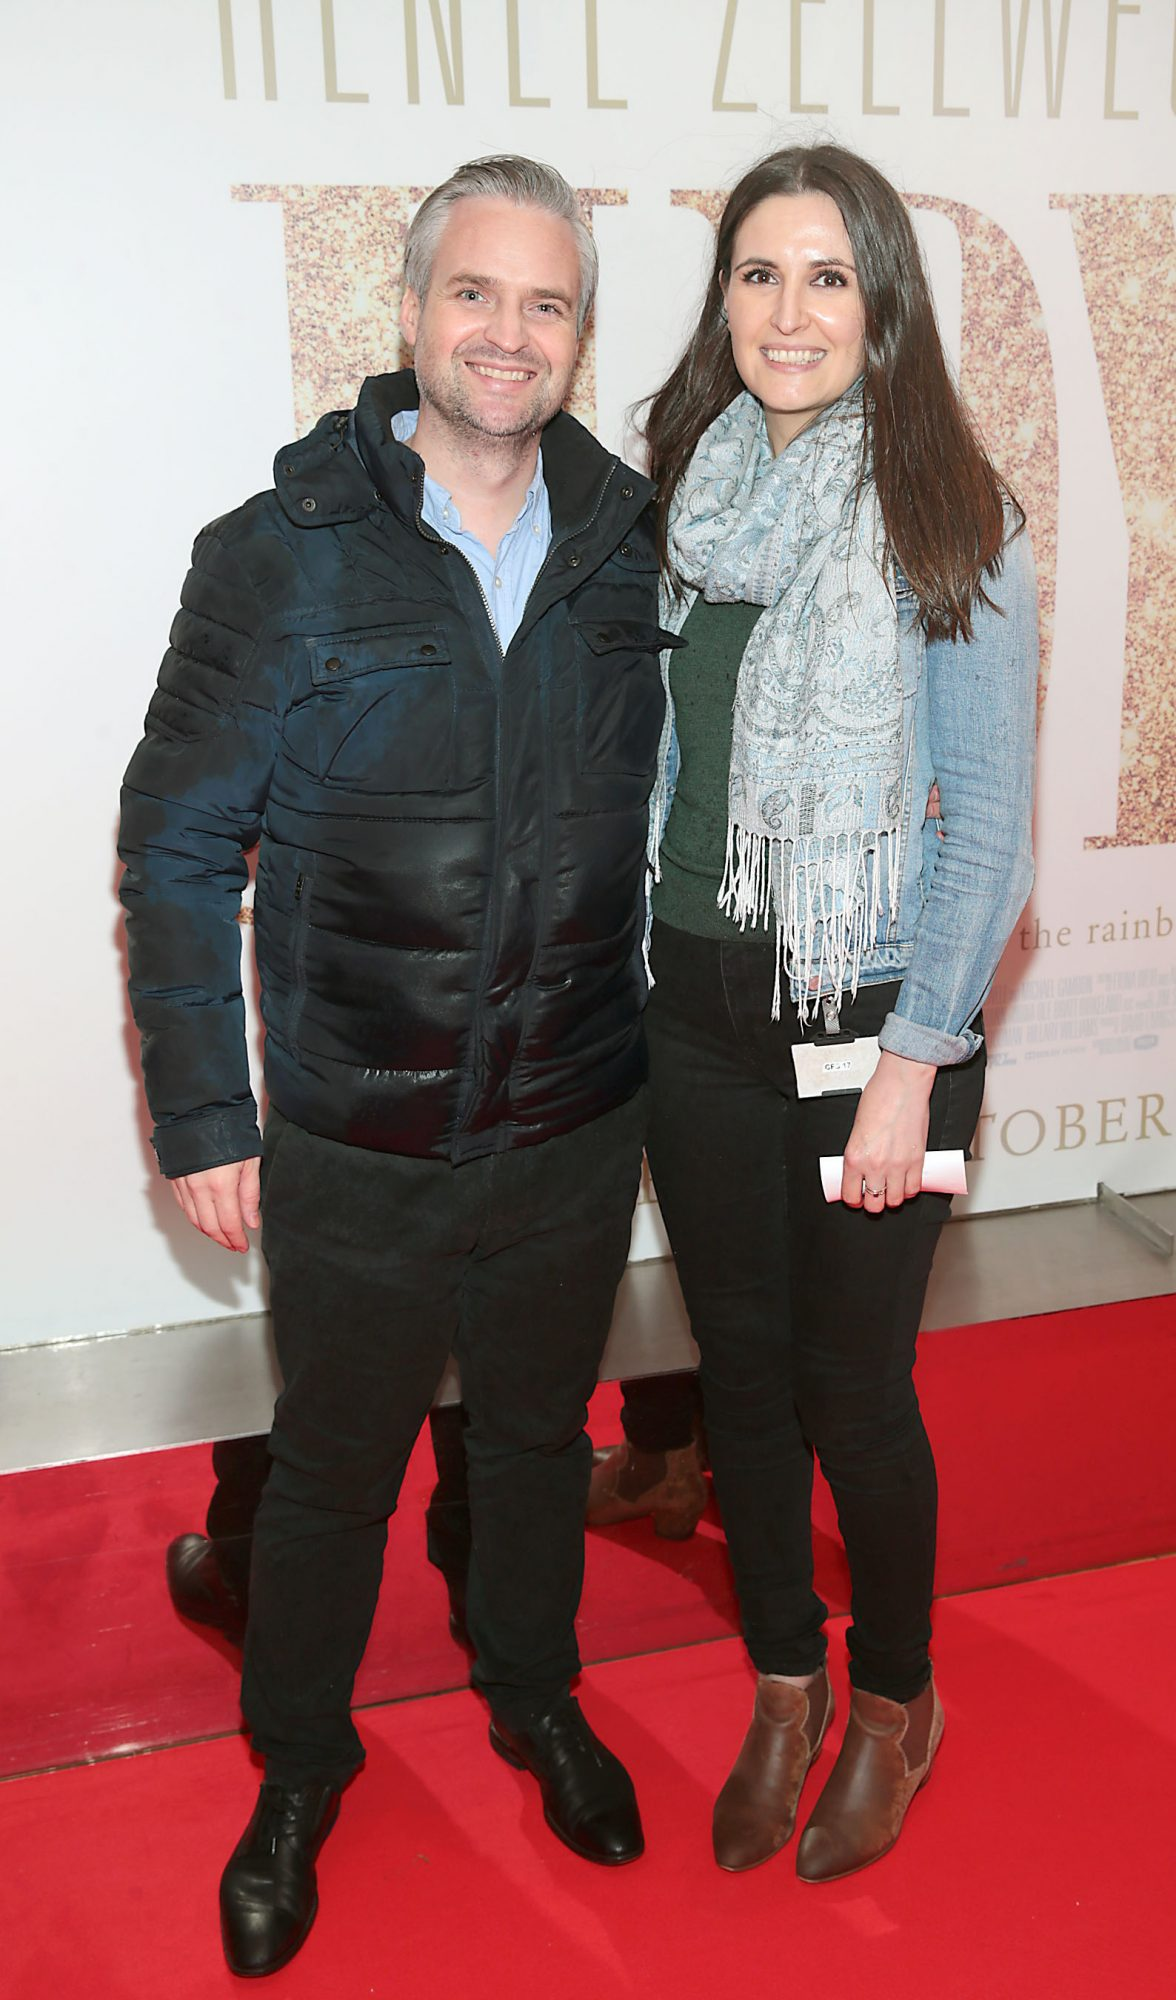 Tom Maguire and Mona Pavel  pictured at the Irish Premiere of Judy at the Lighthouse Cinema, Dublin.  Pic: Brian McEvoy.